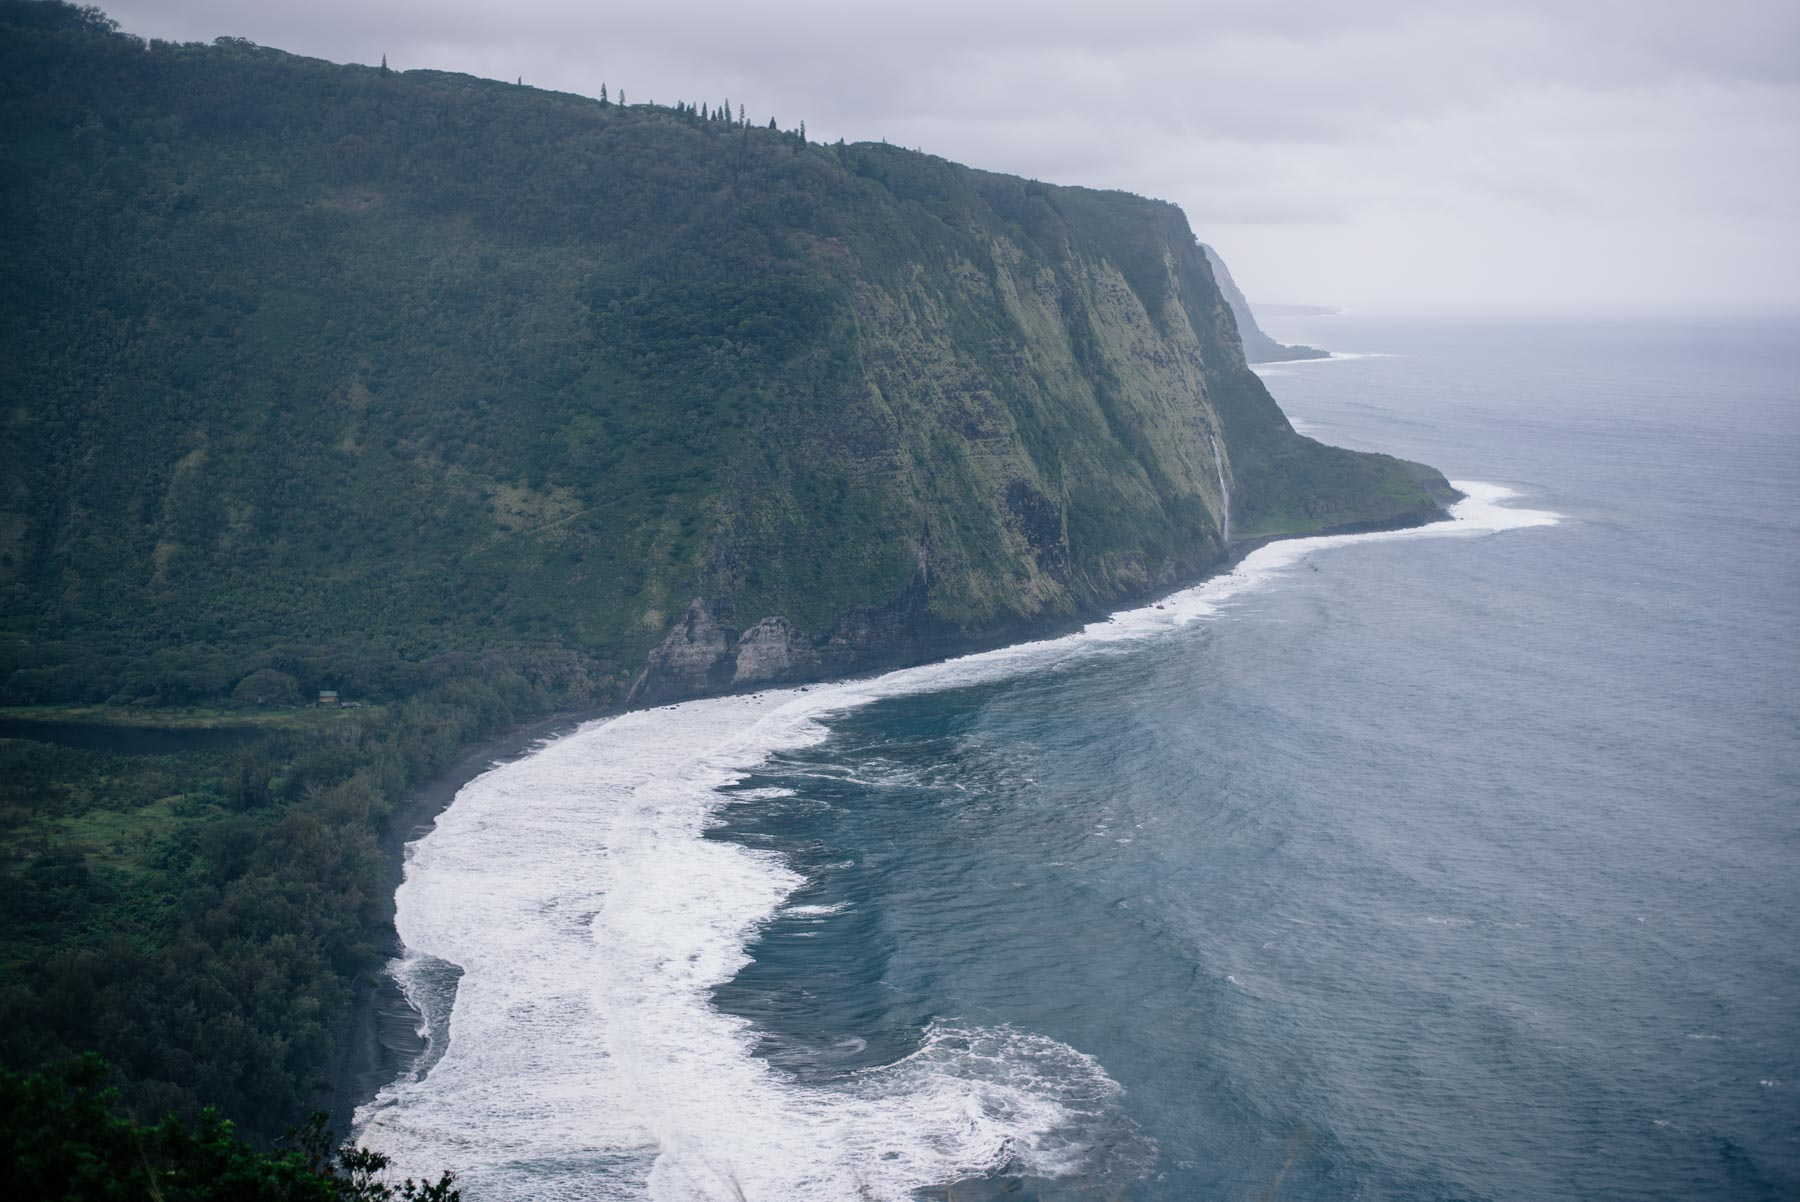 Jess Ann Kirby visits the Waipio Valley Lookout on the Big Island of Hawaii